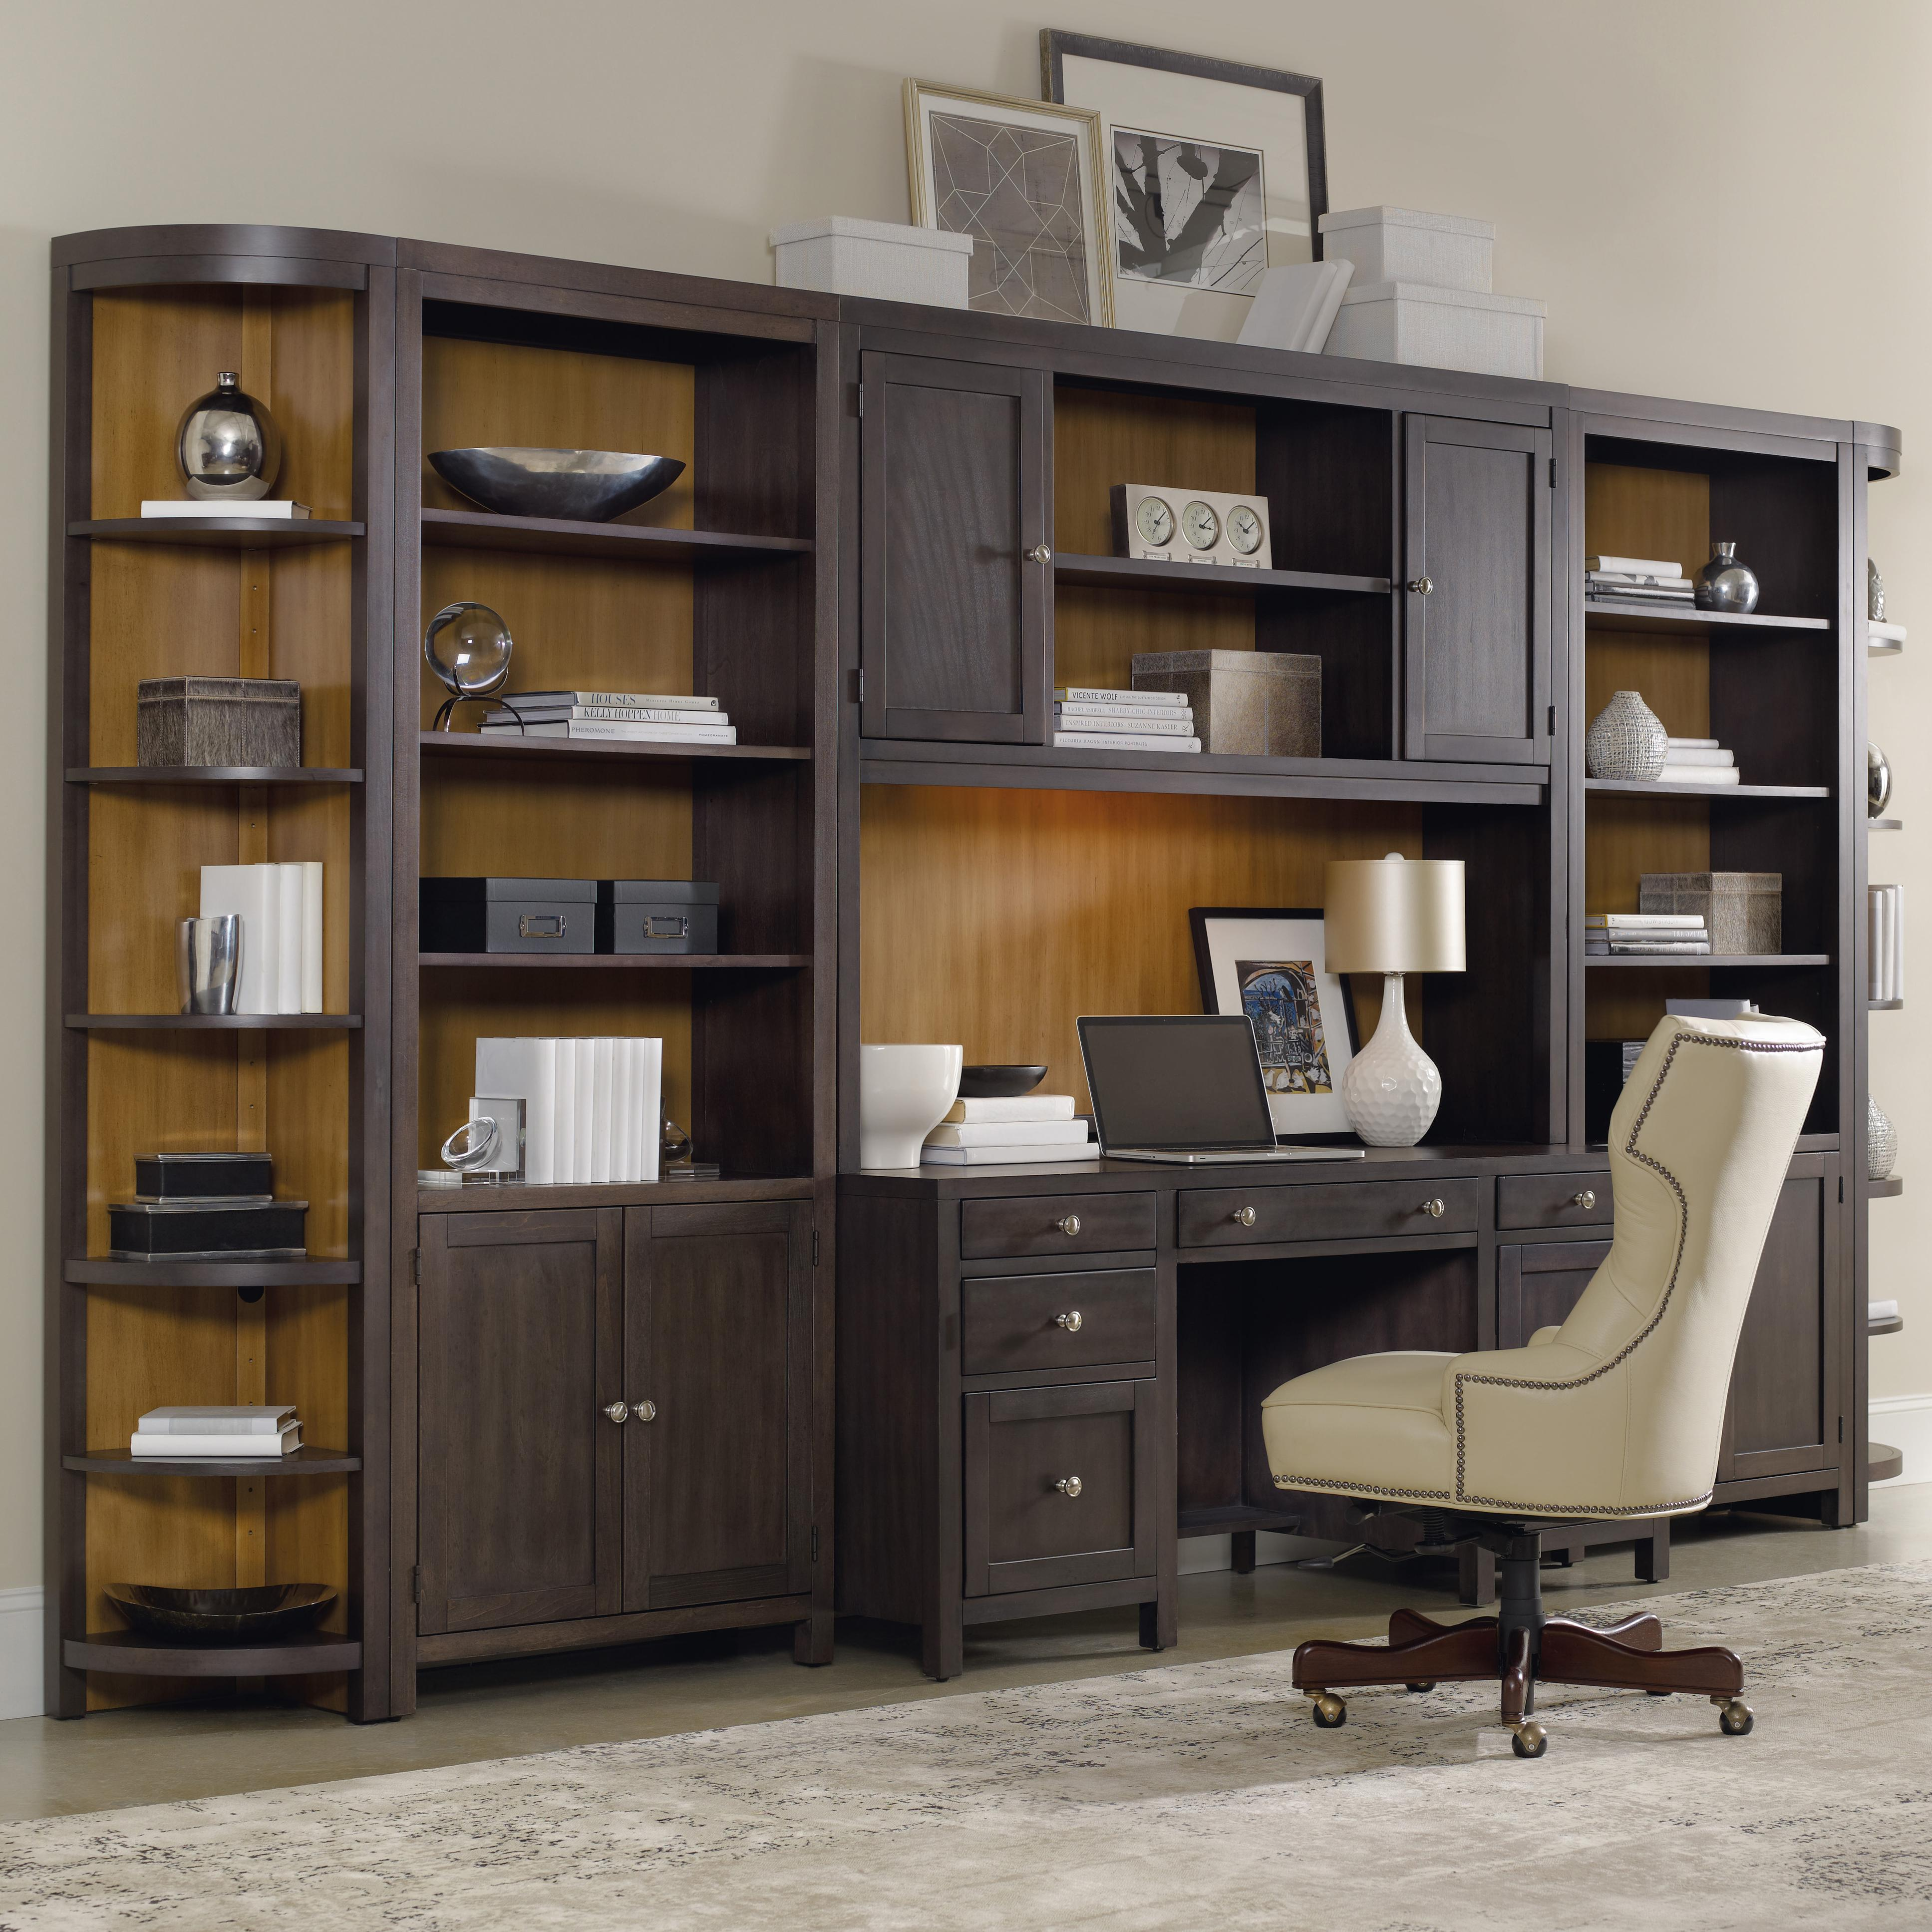 South Park Home Office Wall Unit by Hooker Furniture at Stoney Creek Furniture